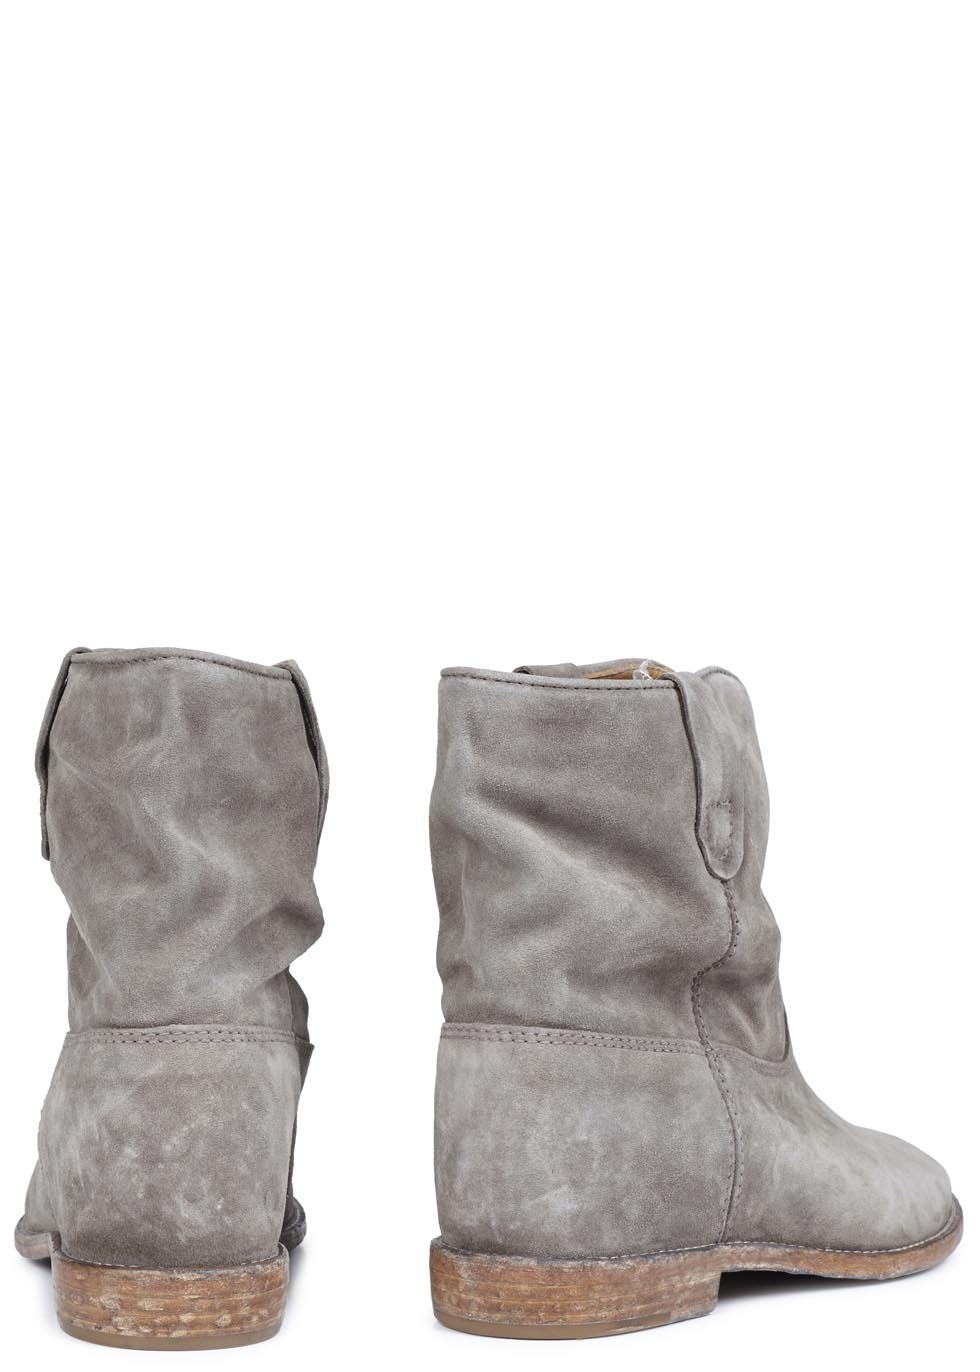 3a8d4247982 Gallery. Previously sold at: Harvey Nichols · Women's Isabel Marant Crisi